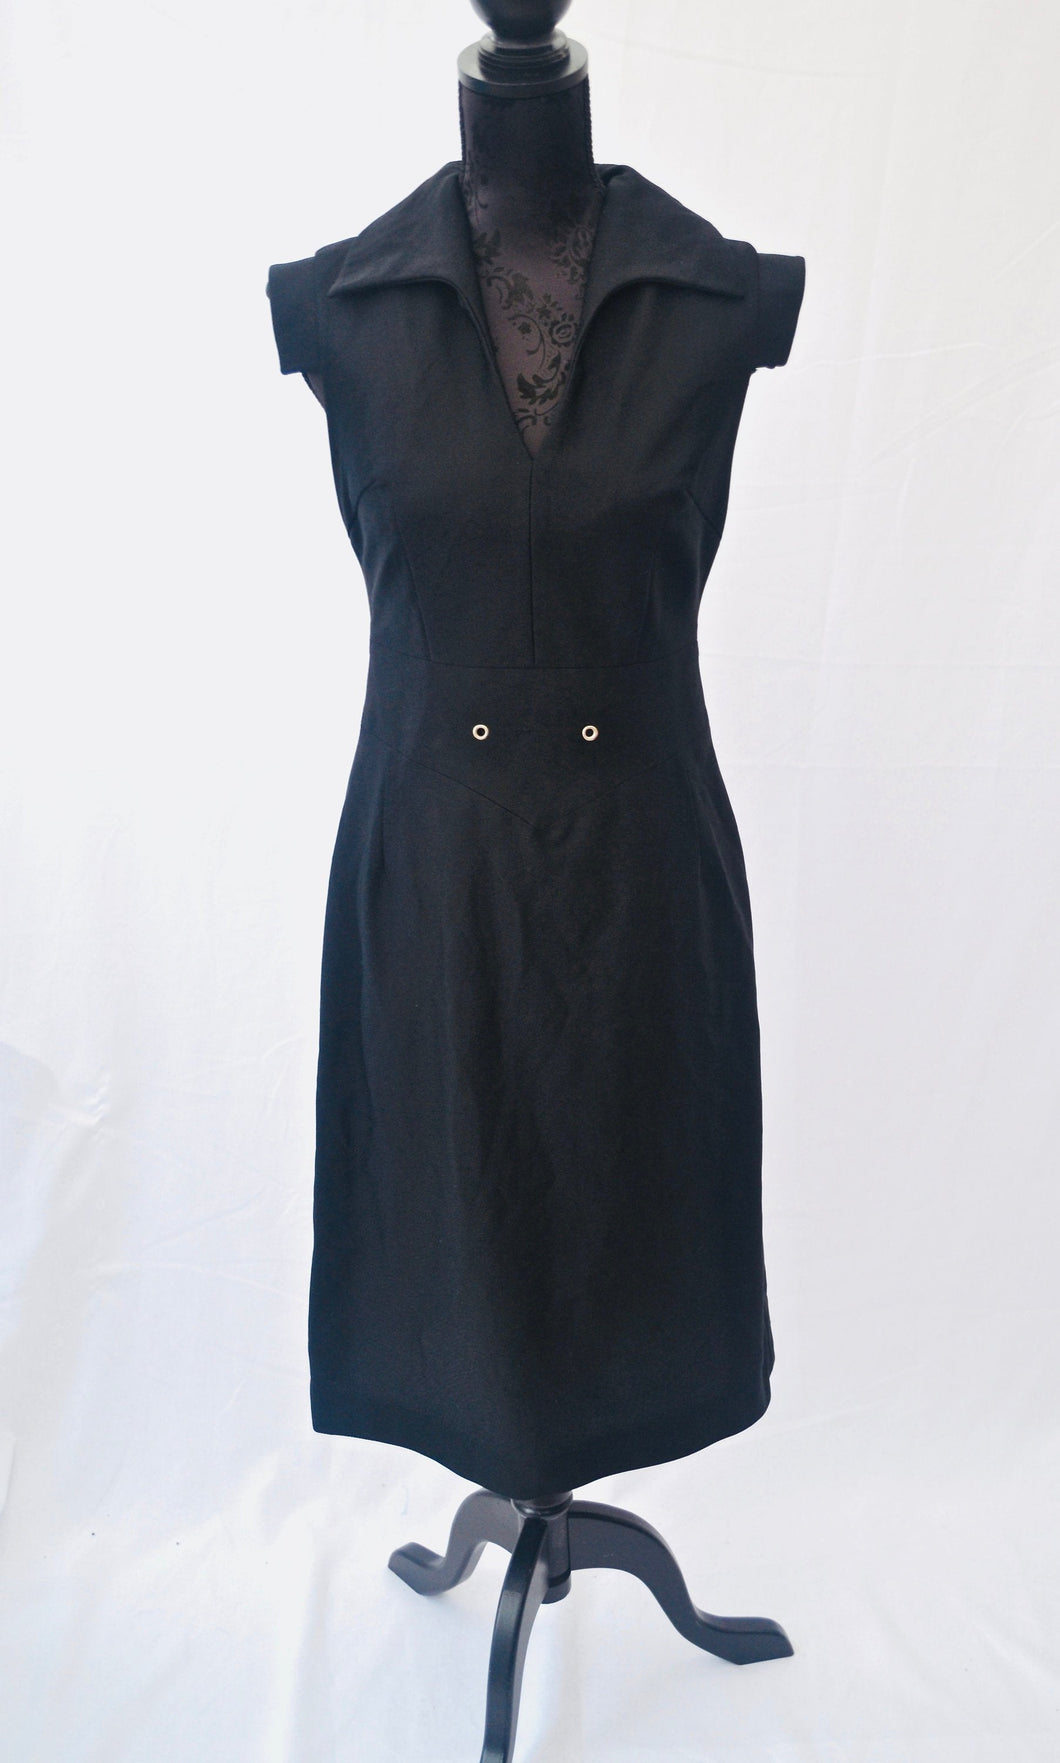 1970s fitted black dress with collar by Kessi Kleider Est UK size 8